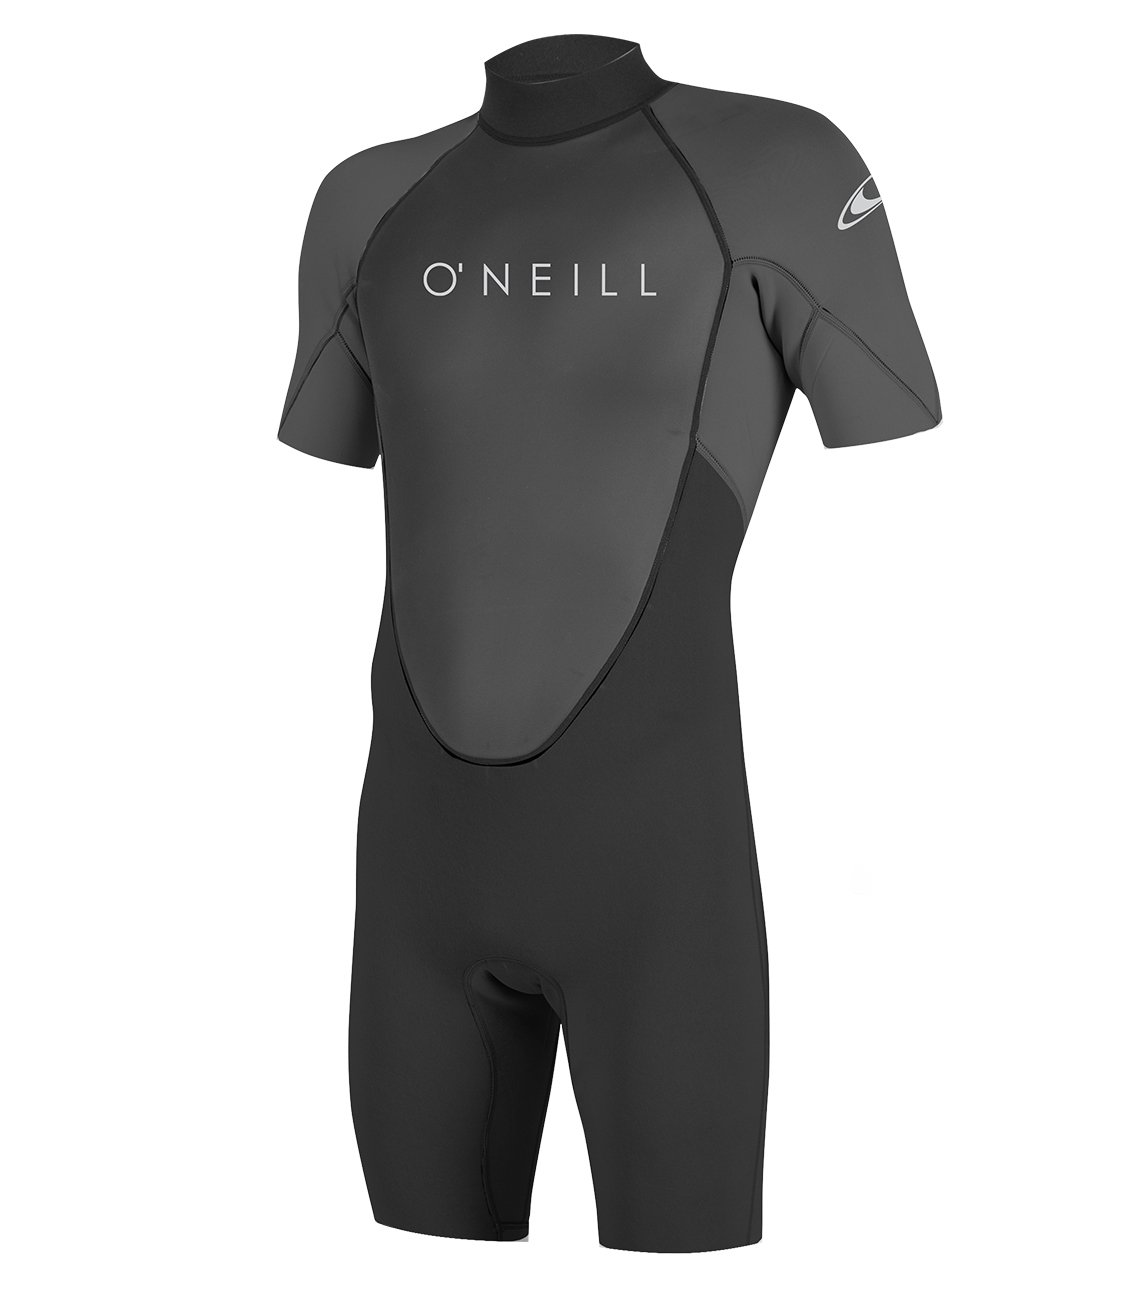 O'Neill Men's Reactor-2 2mm Back Zip Short Sleeve Spring Wetsuit, Black/Graphite, X-Large by O'Neill Wetsuits